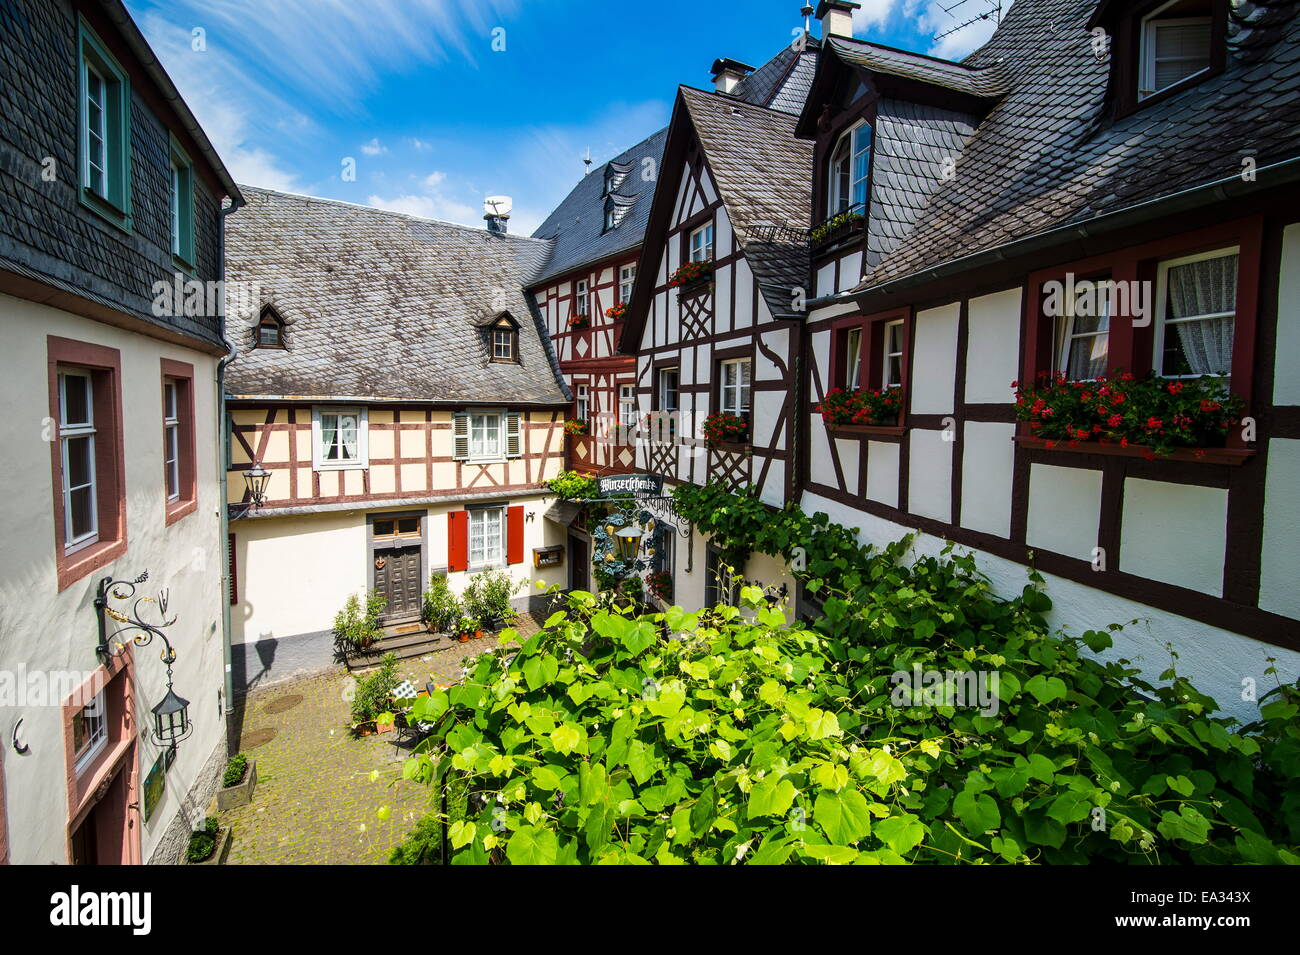 Half timbered houses in Beilstein, Moselle Valley, Rhineland-Palatinate, Germany, Europe - Stock Image